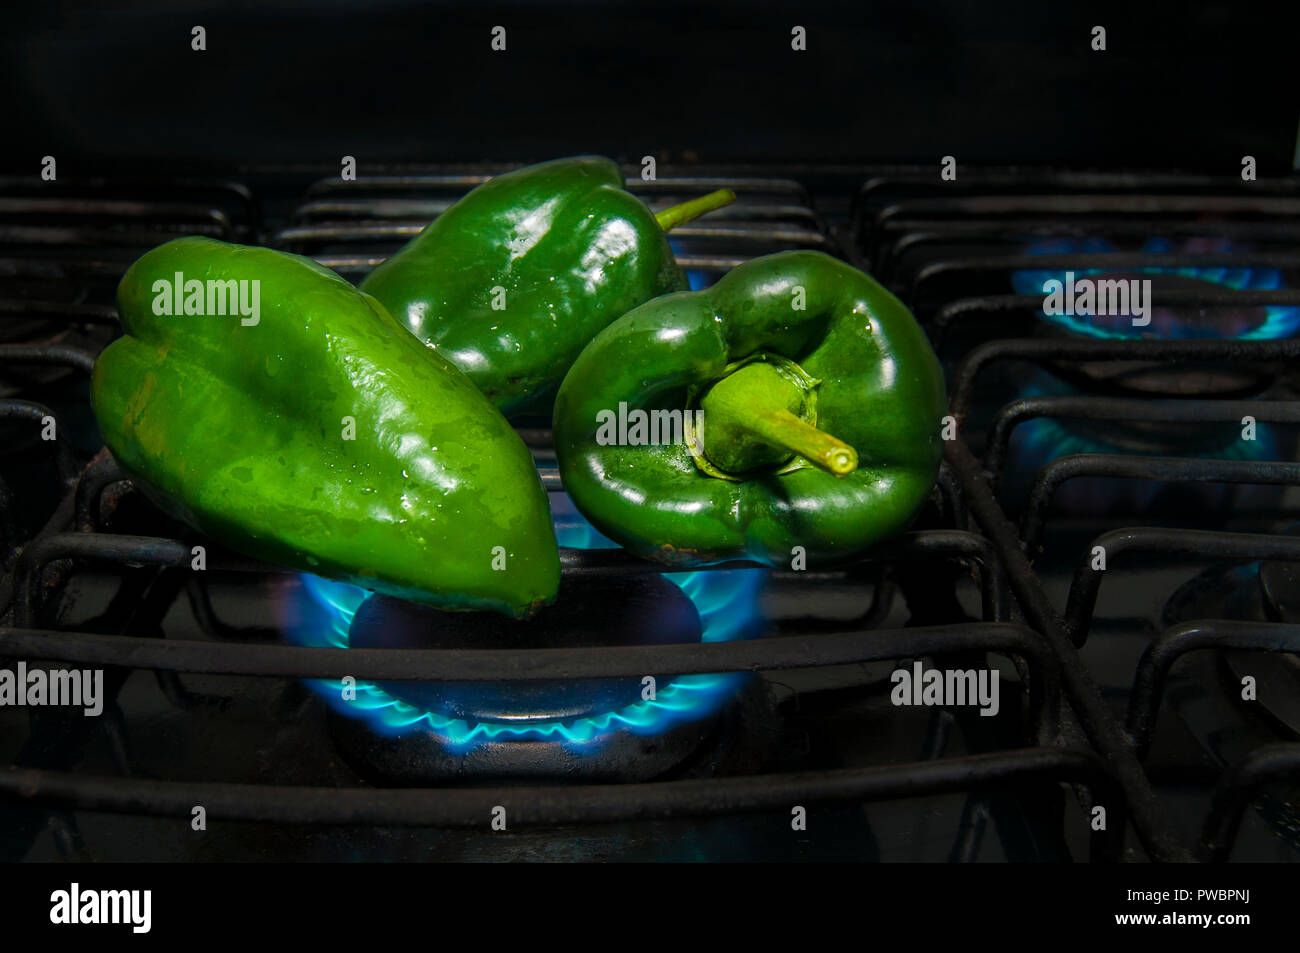 Procedure to peel CHILES PASILLA, in order to prepare chiles rellenos or rajas (a mexican food dish) Stock Photo